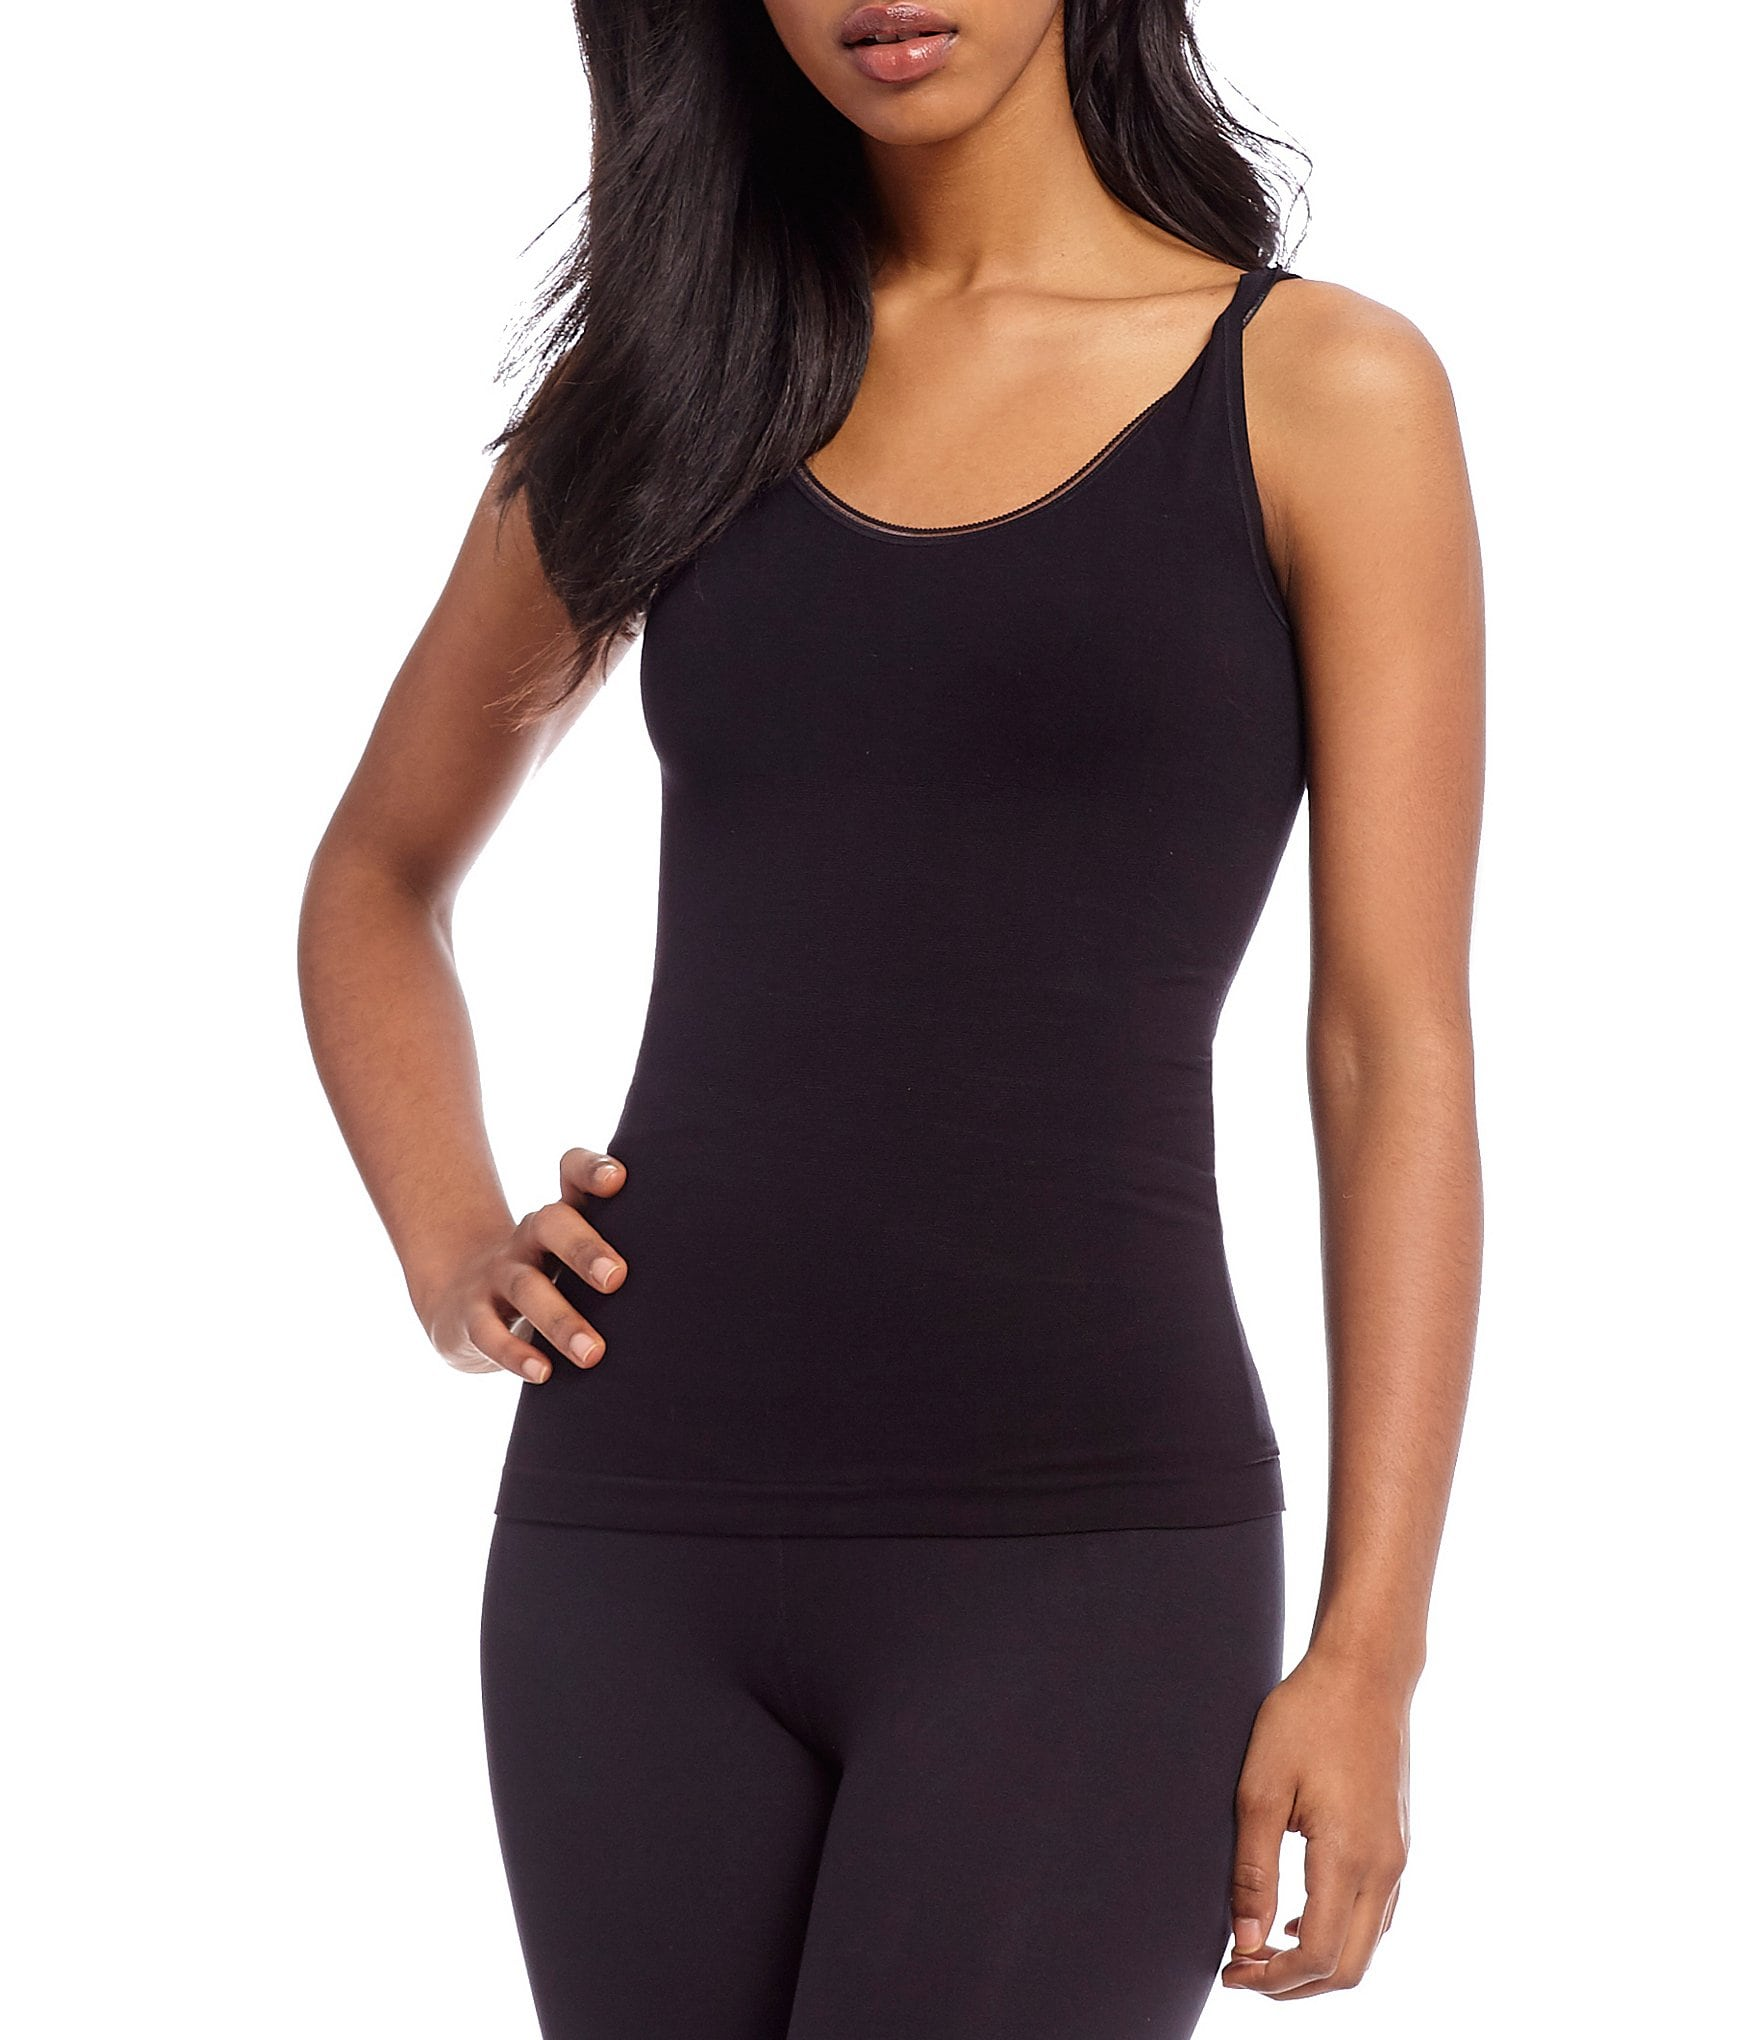 caa6b8586be54 Yummie Seamless Shape 2-Way Tank